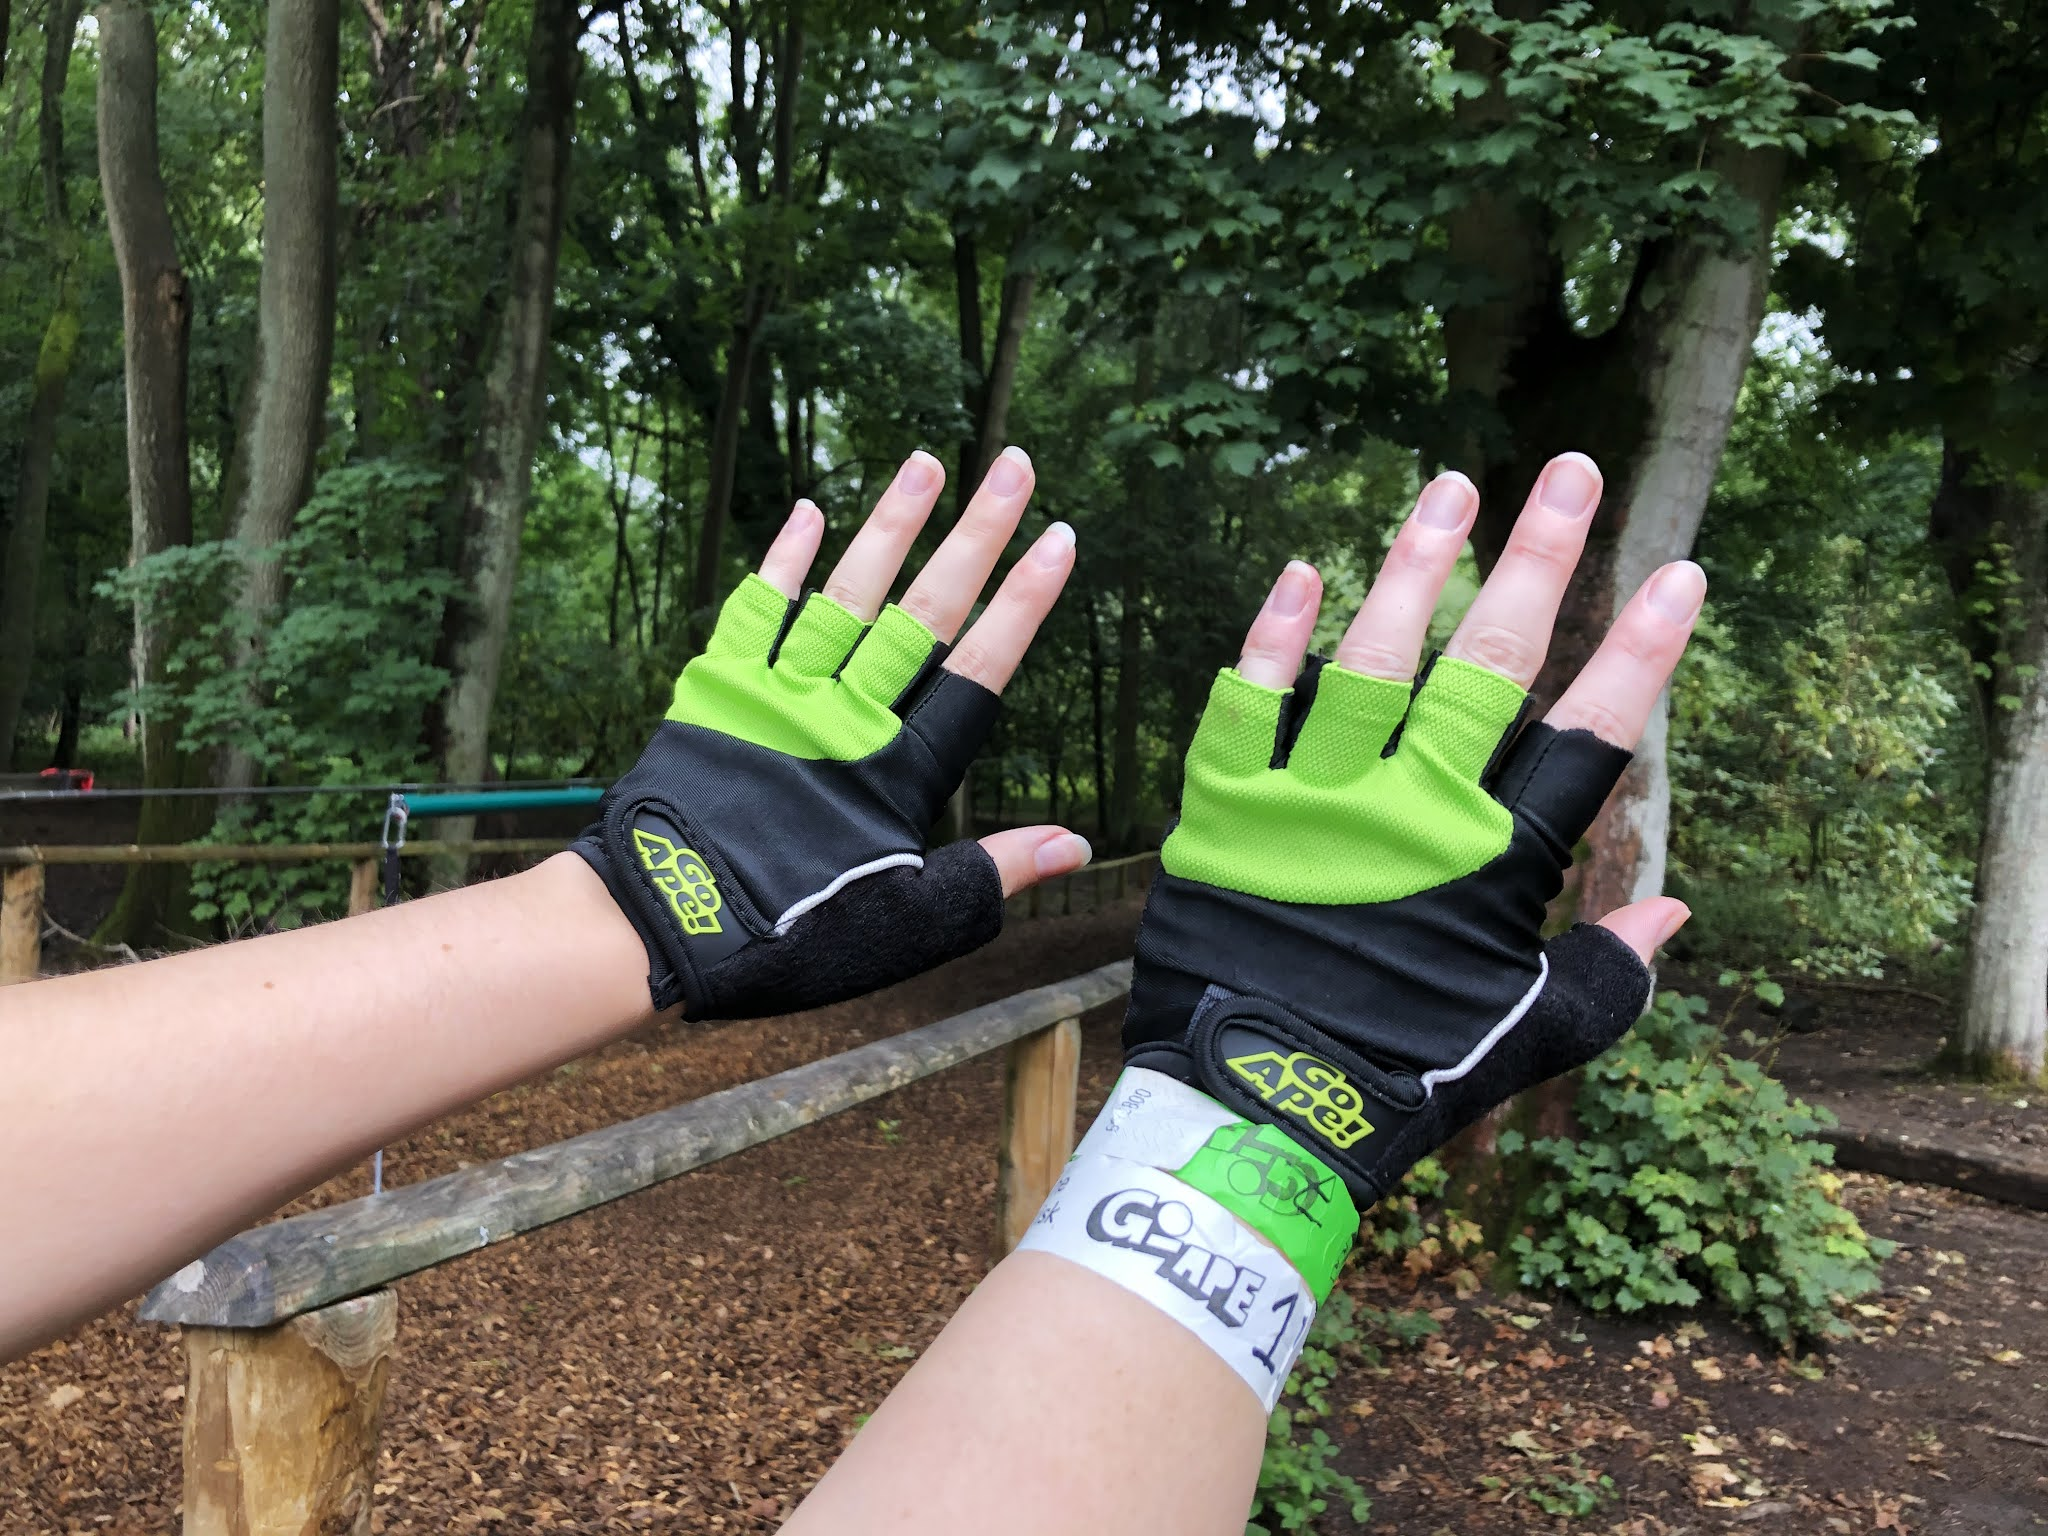 Two pairs of hands wearing the fingerless Go Ape gloves